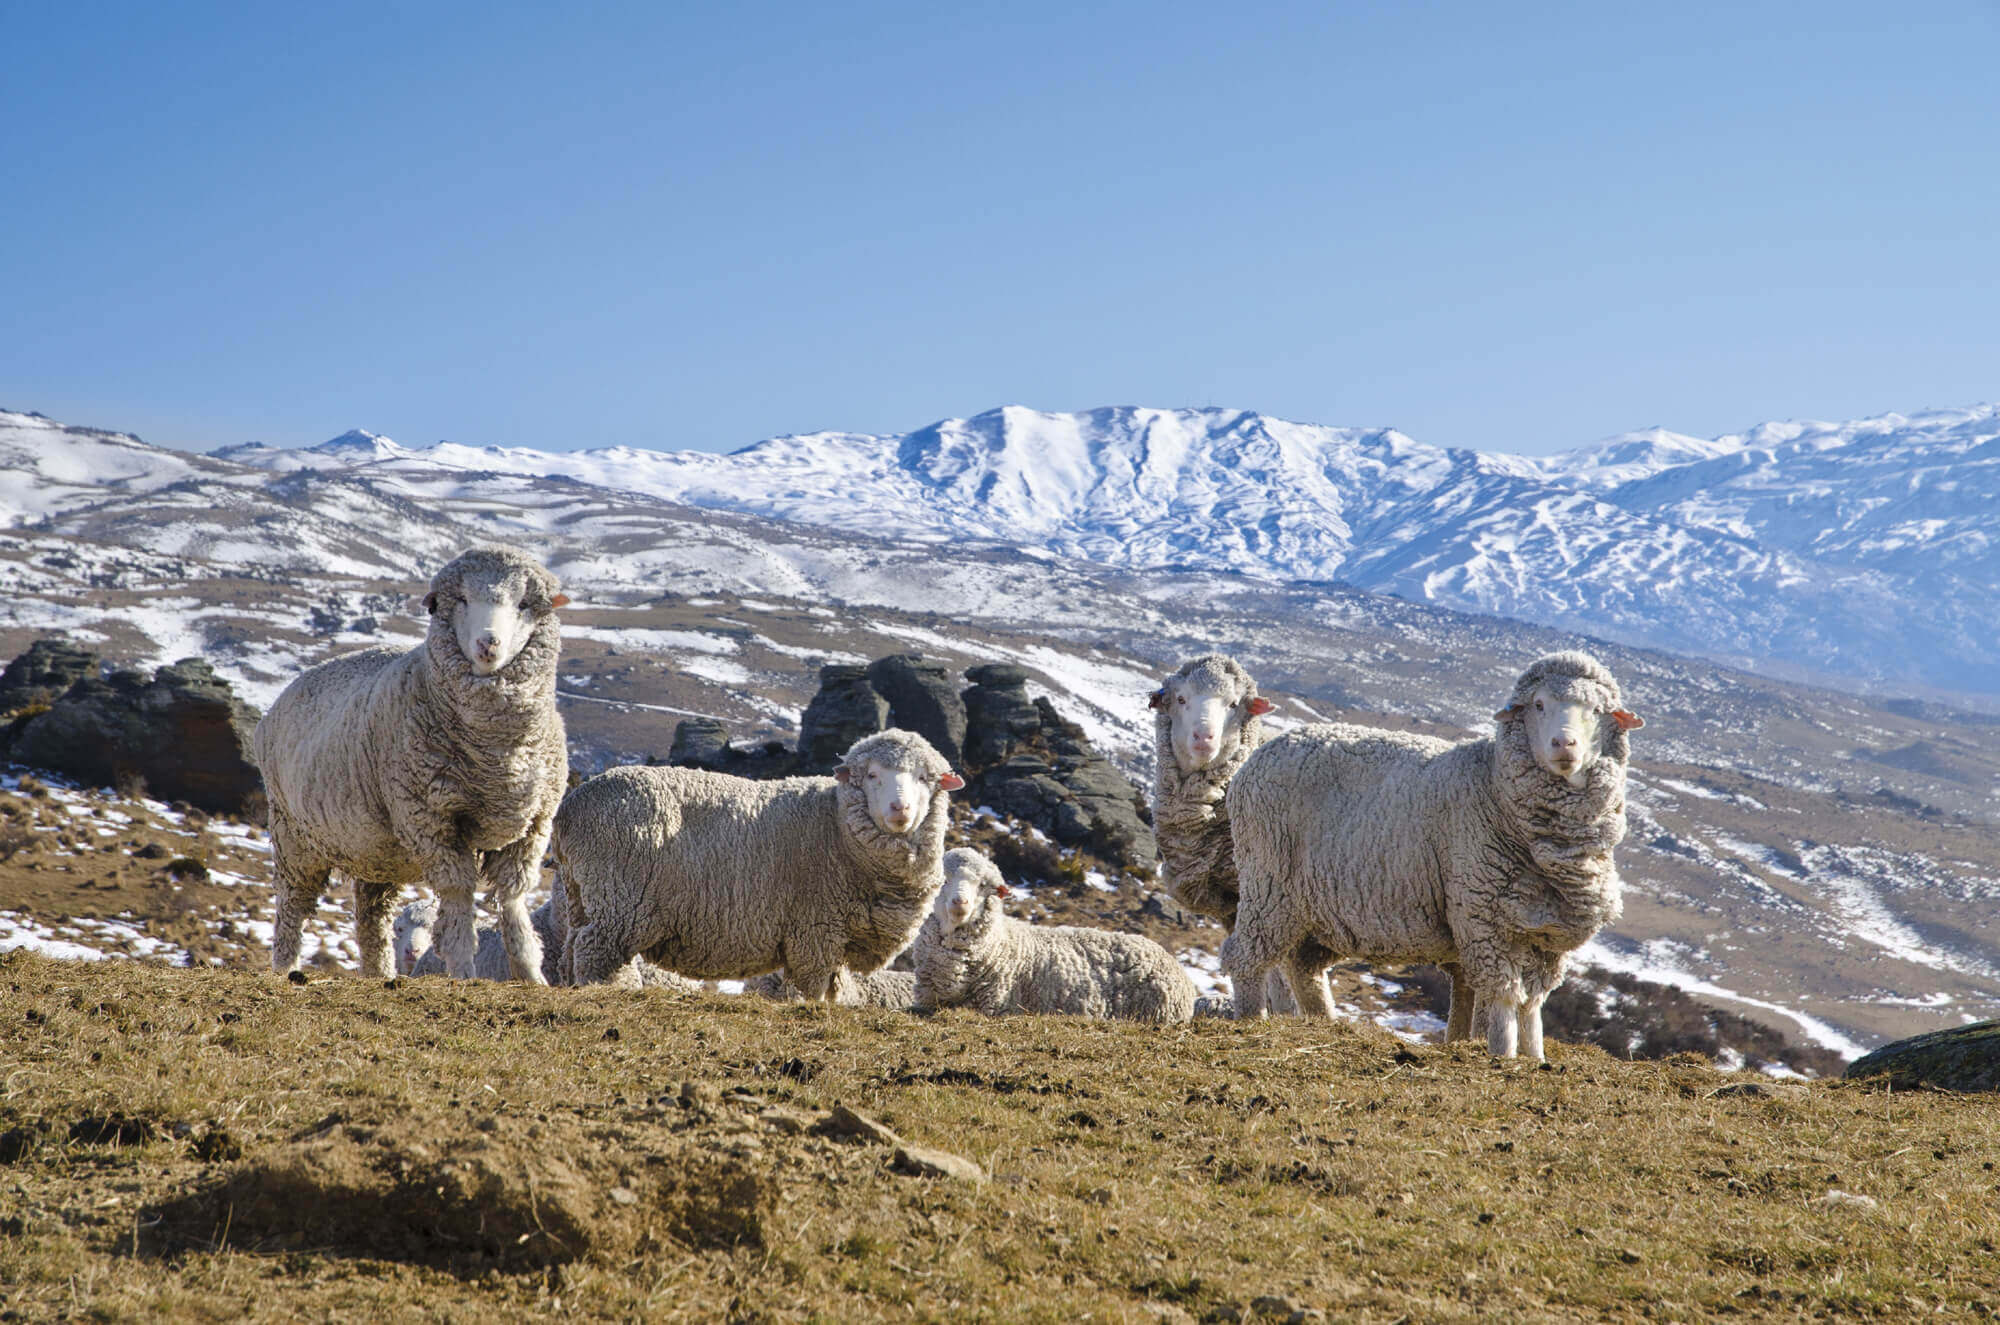 Merino ewes at Duffers Pass, Central Otago. Unlike crossbred sheep, merinos thrive in the high country, particularly in the South Island of New Zealand.